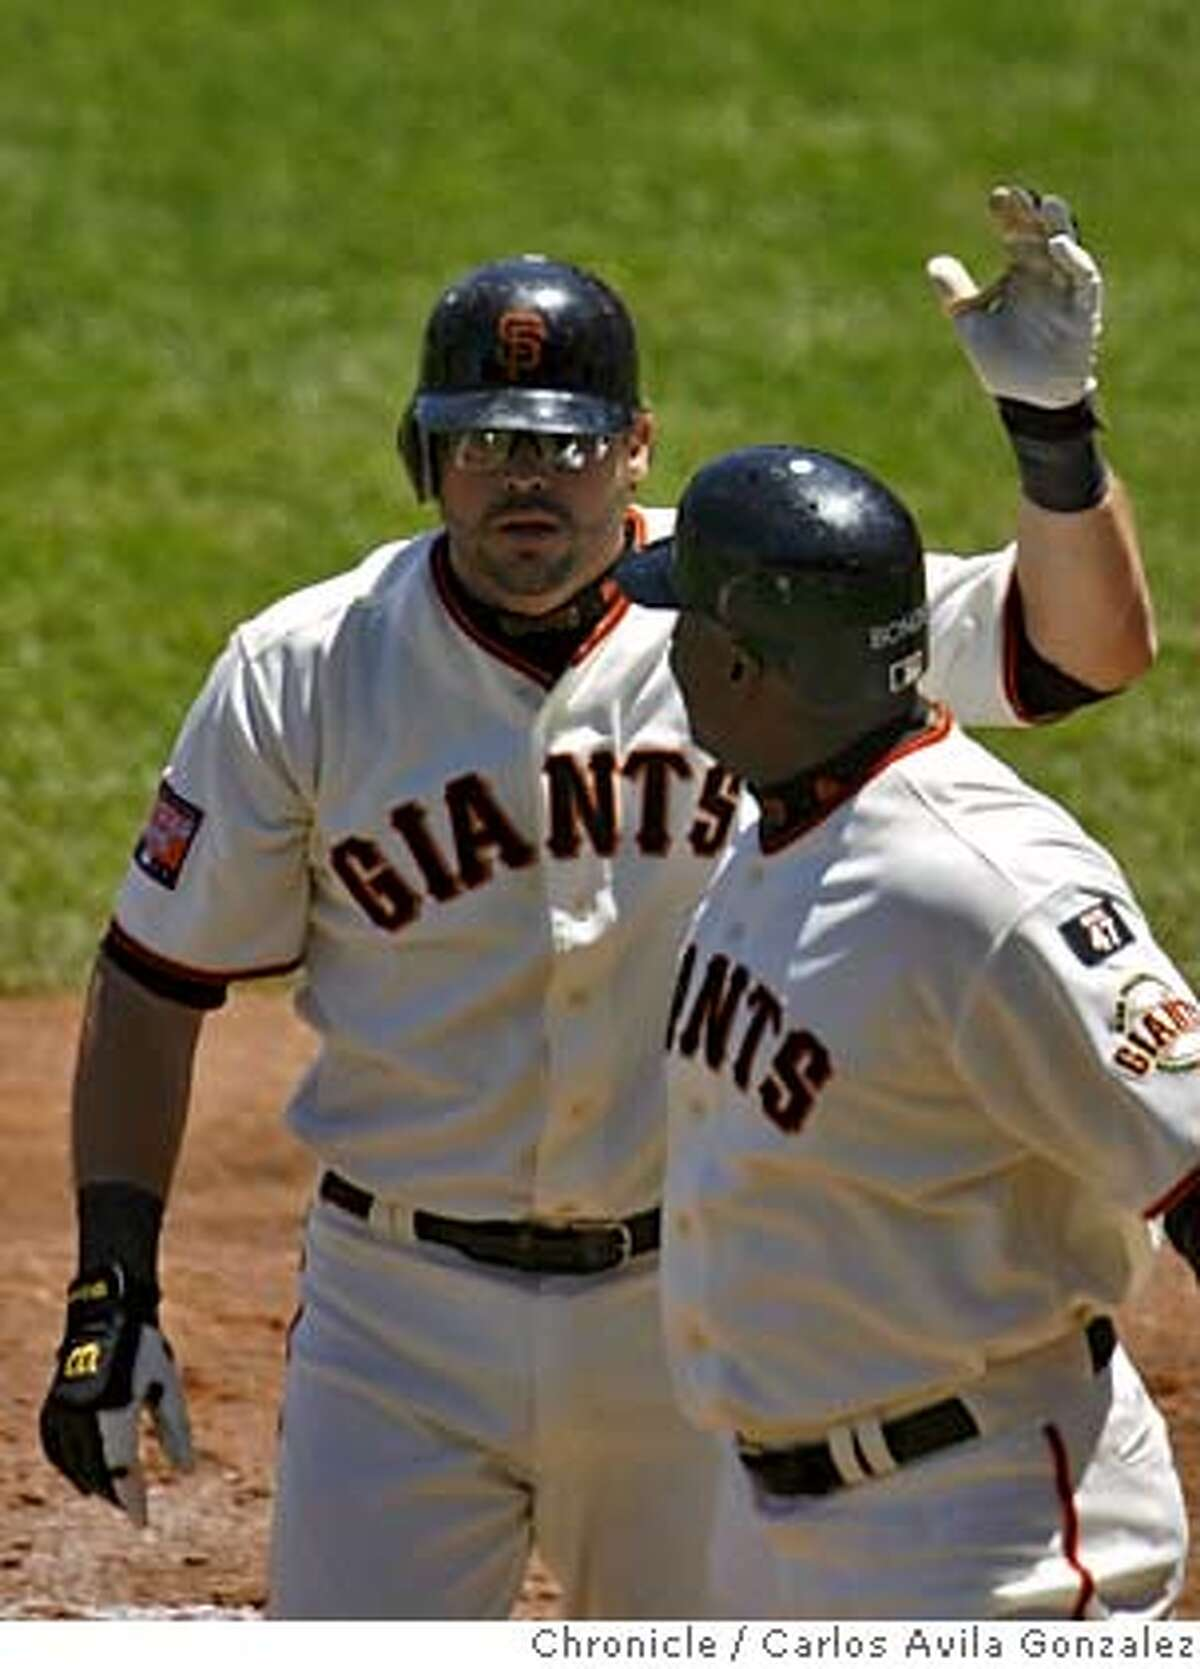 Ryan Klesko pats Barry Bonds on the back after the two scored on Klesko's two-run homerun in the bottom of the fourth inning. The Giants played the Arizona Diamondbacks at AT&T Park in San Francisco, on Sunday, July 1, 2007. The Giants won the game 13-0. Photo by Carlos Avila Gonzalez/The Chronicle Photo taken on 7/1/07, in San Francisco, Ca, USA. **All names cq (source)